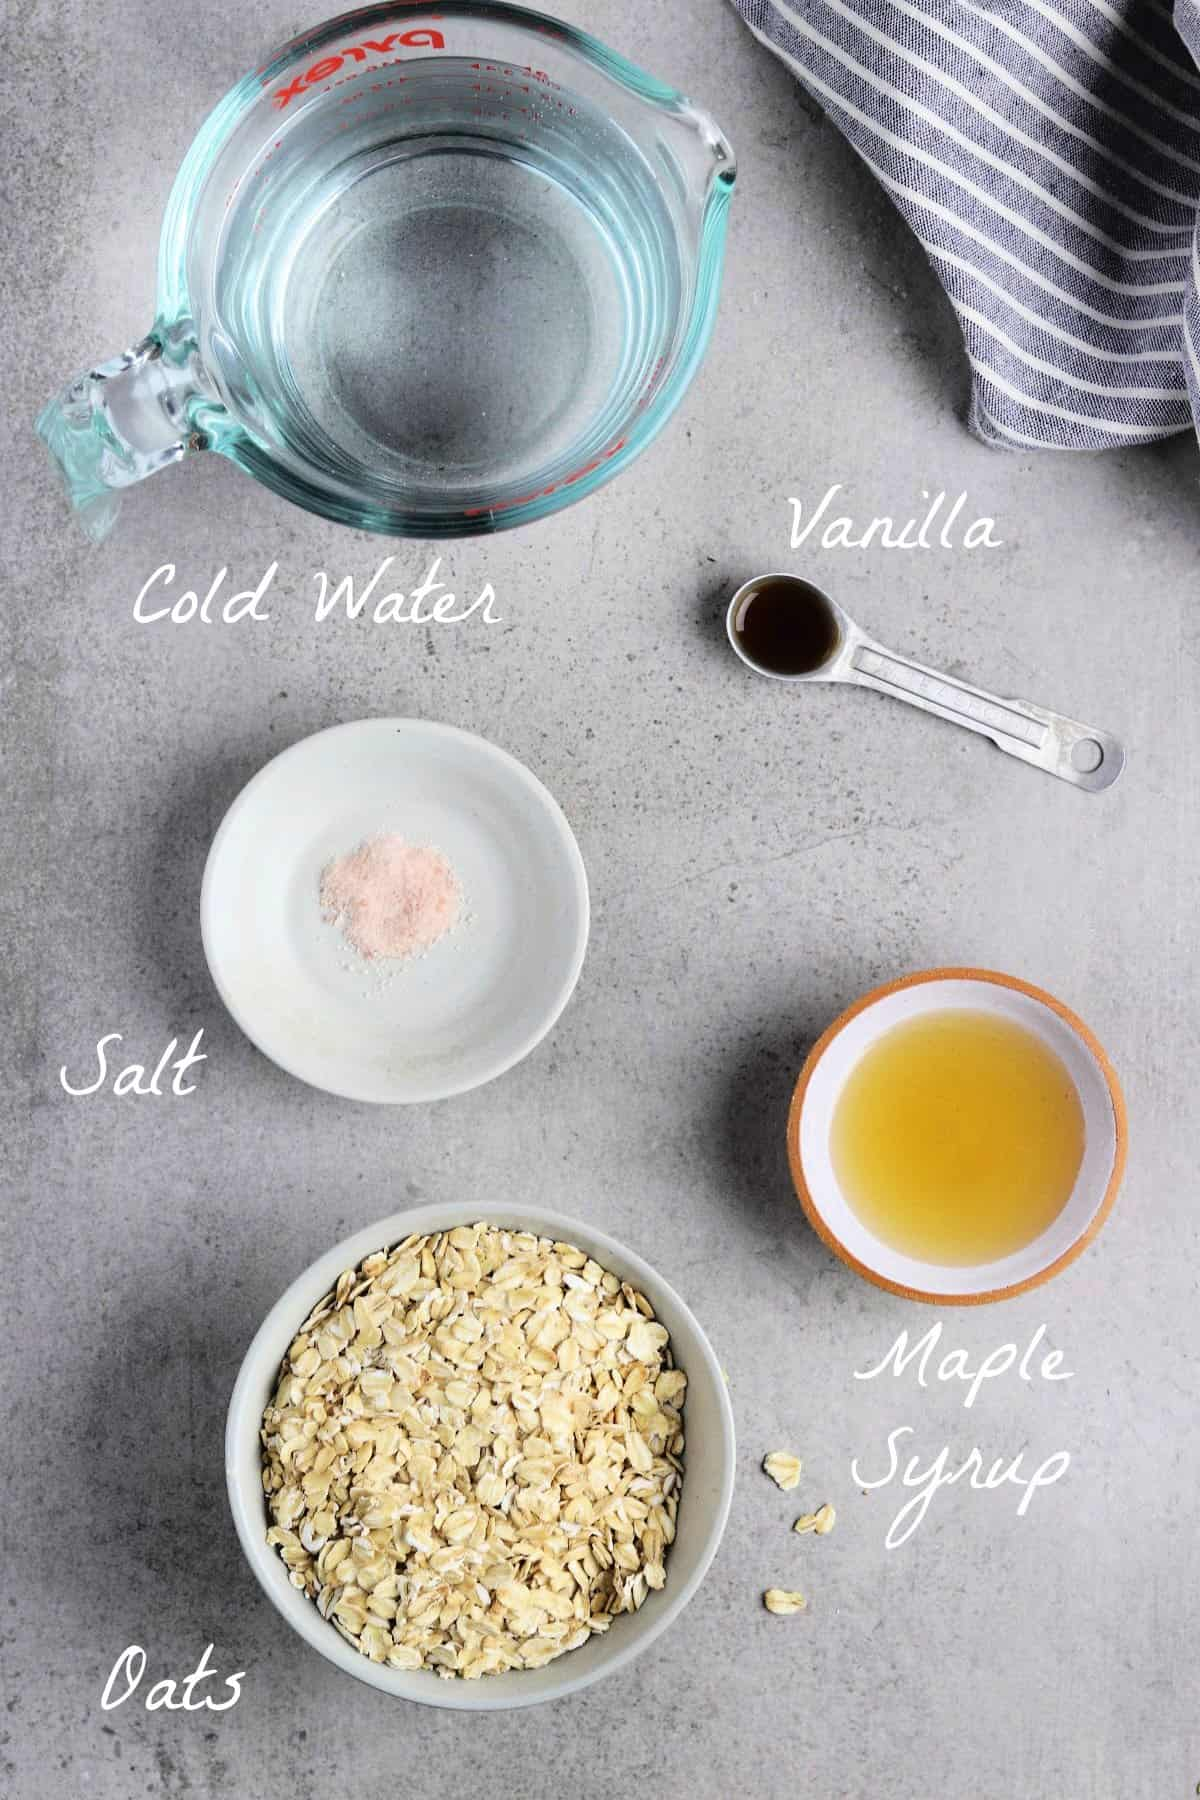 All ingredients to make oat milk on a stone table top.